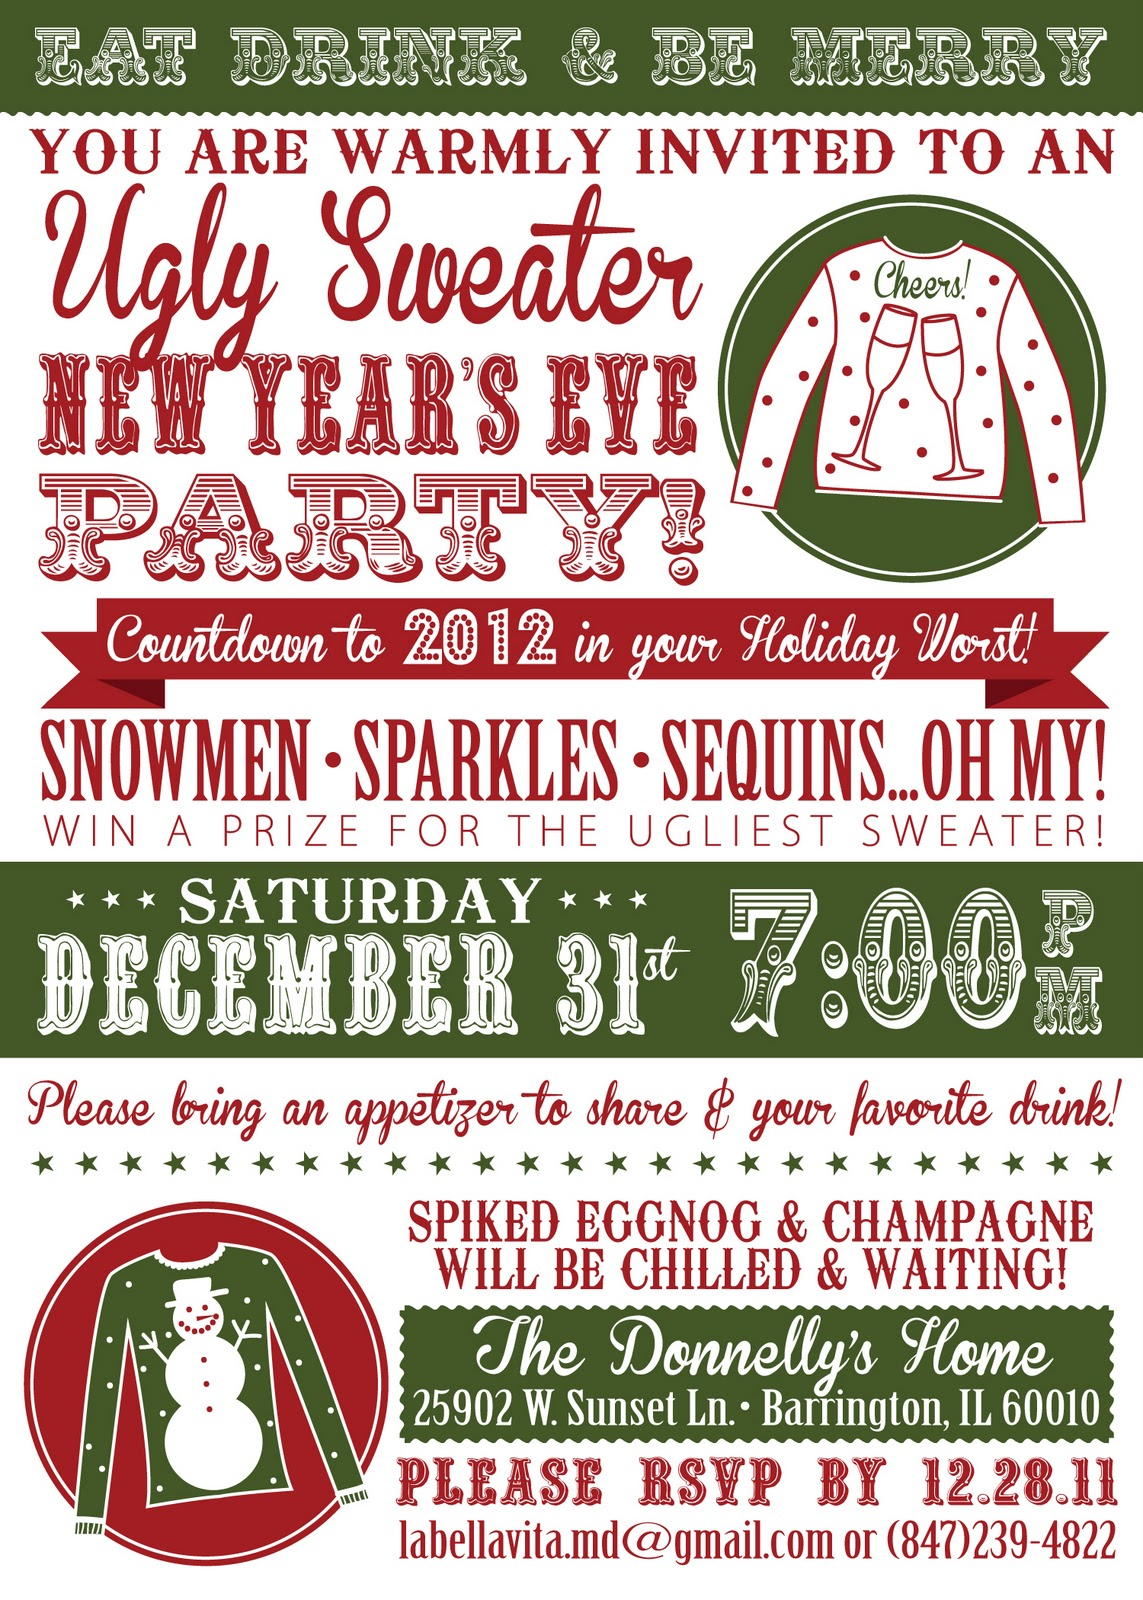 Sweet Peas Lucky Honey New Years Eve Ugly Sweater Party 2012